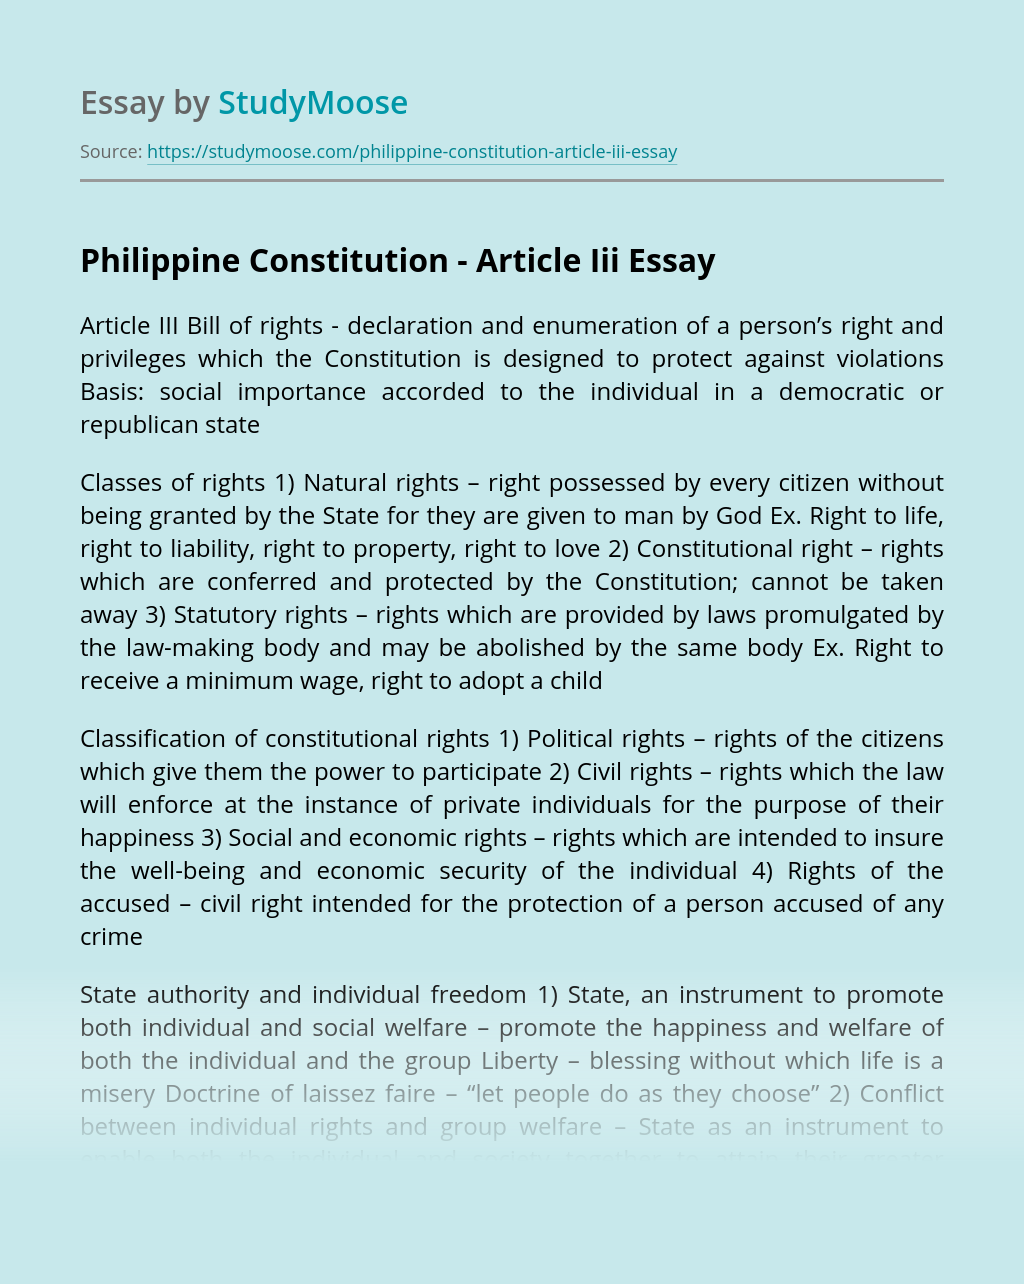 Philippine Constitution - Article Iii